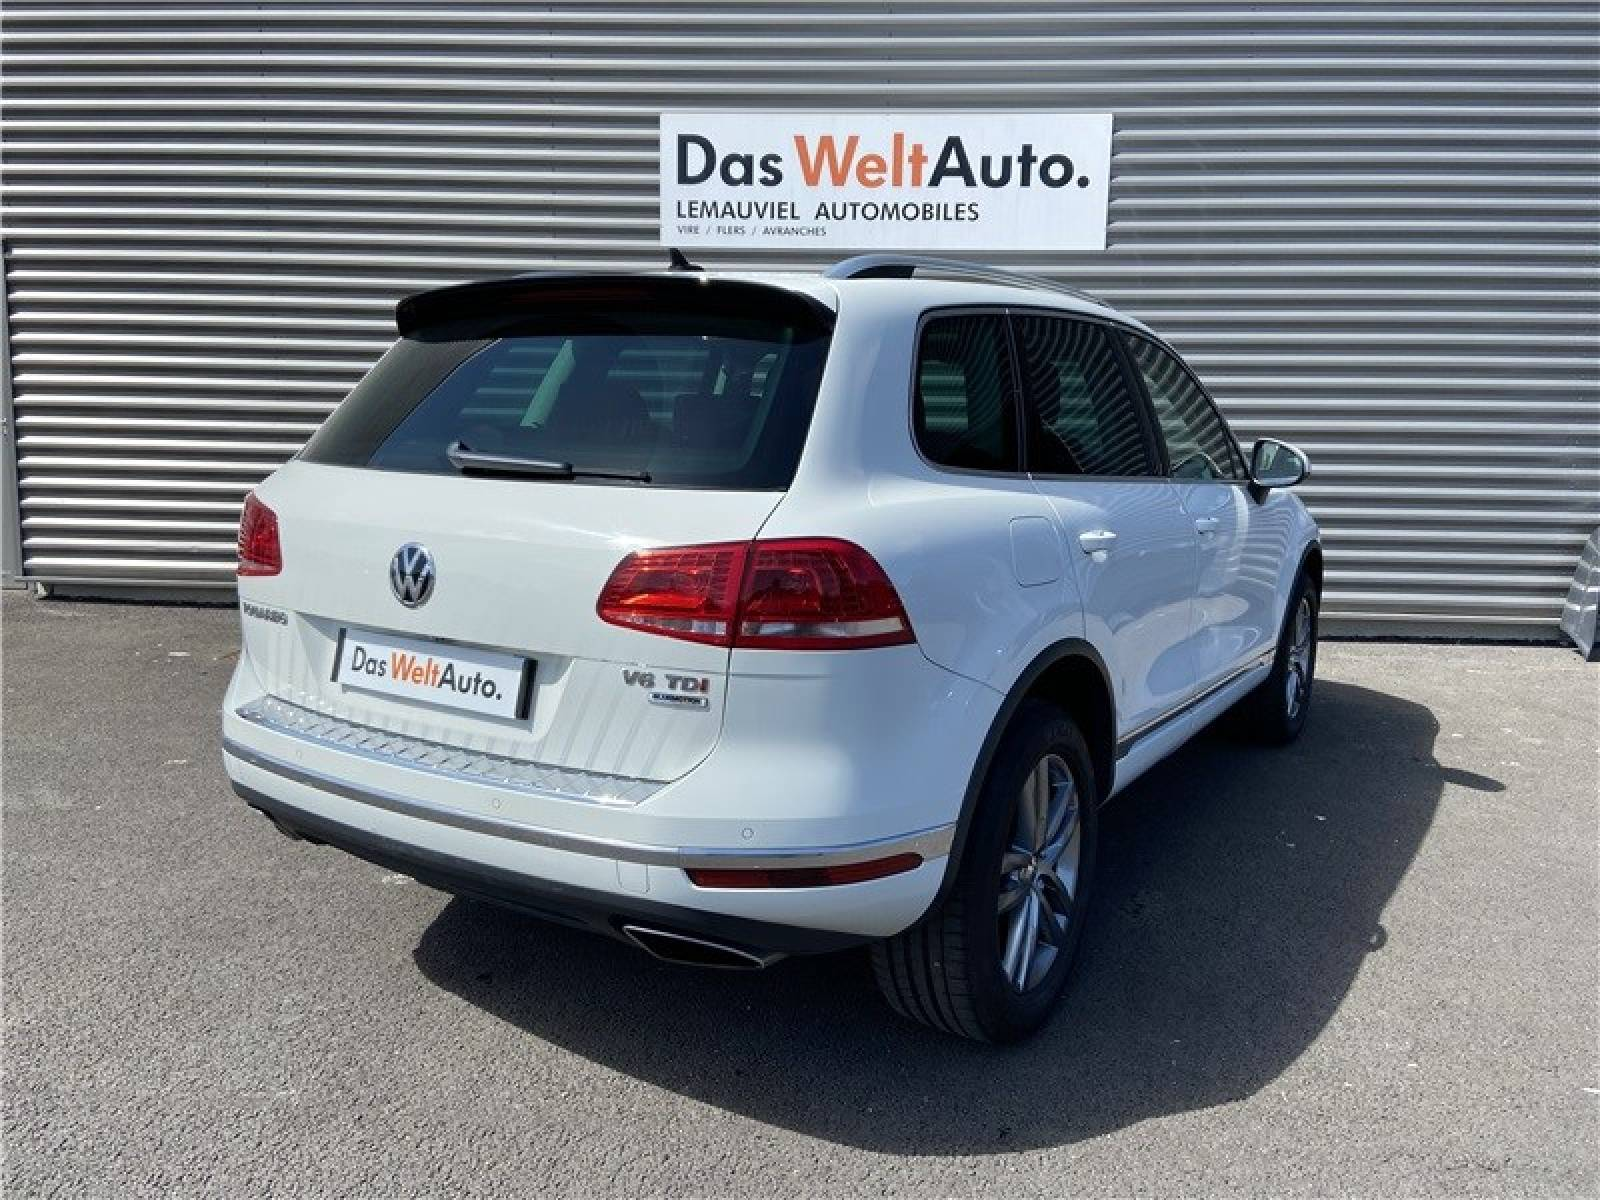 VOLKSWAGEN Touareg 3.0 V6 TDI 262 4Motion BlueMotion Technology - véhicule d'occasion - LEMAUVIEL AUTOMOBILES - Présentation site web V2 - Lemauviel Automobiles - VIRE - 14500 - VIRE - 4